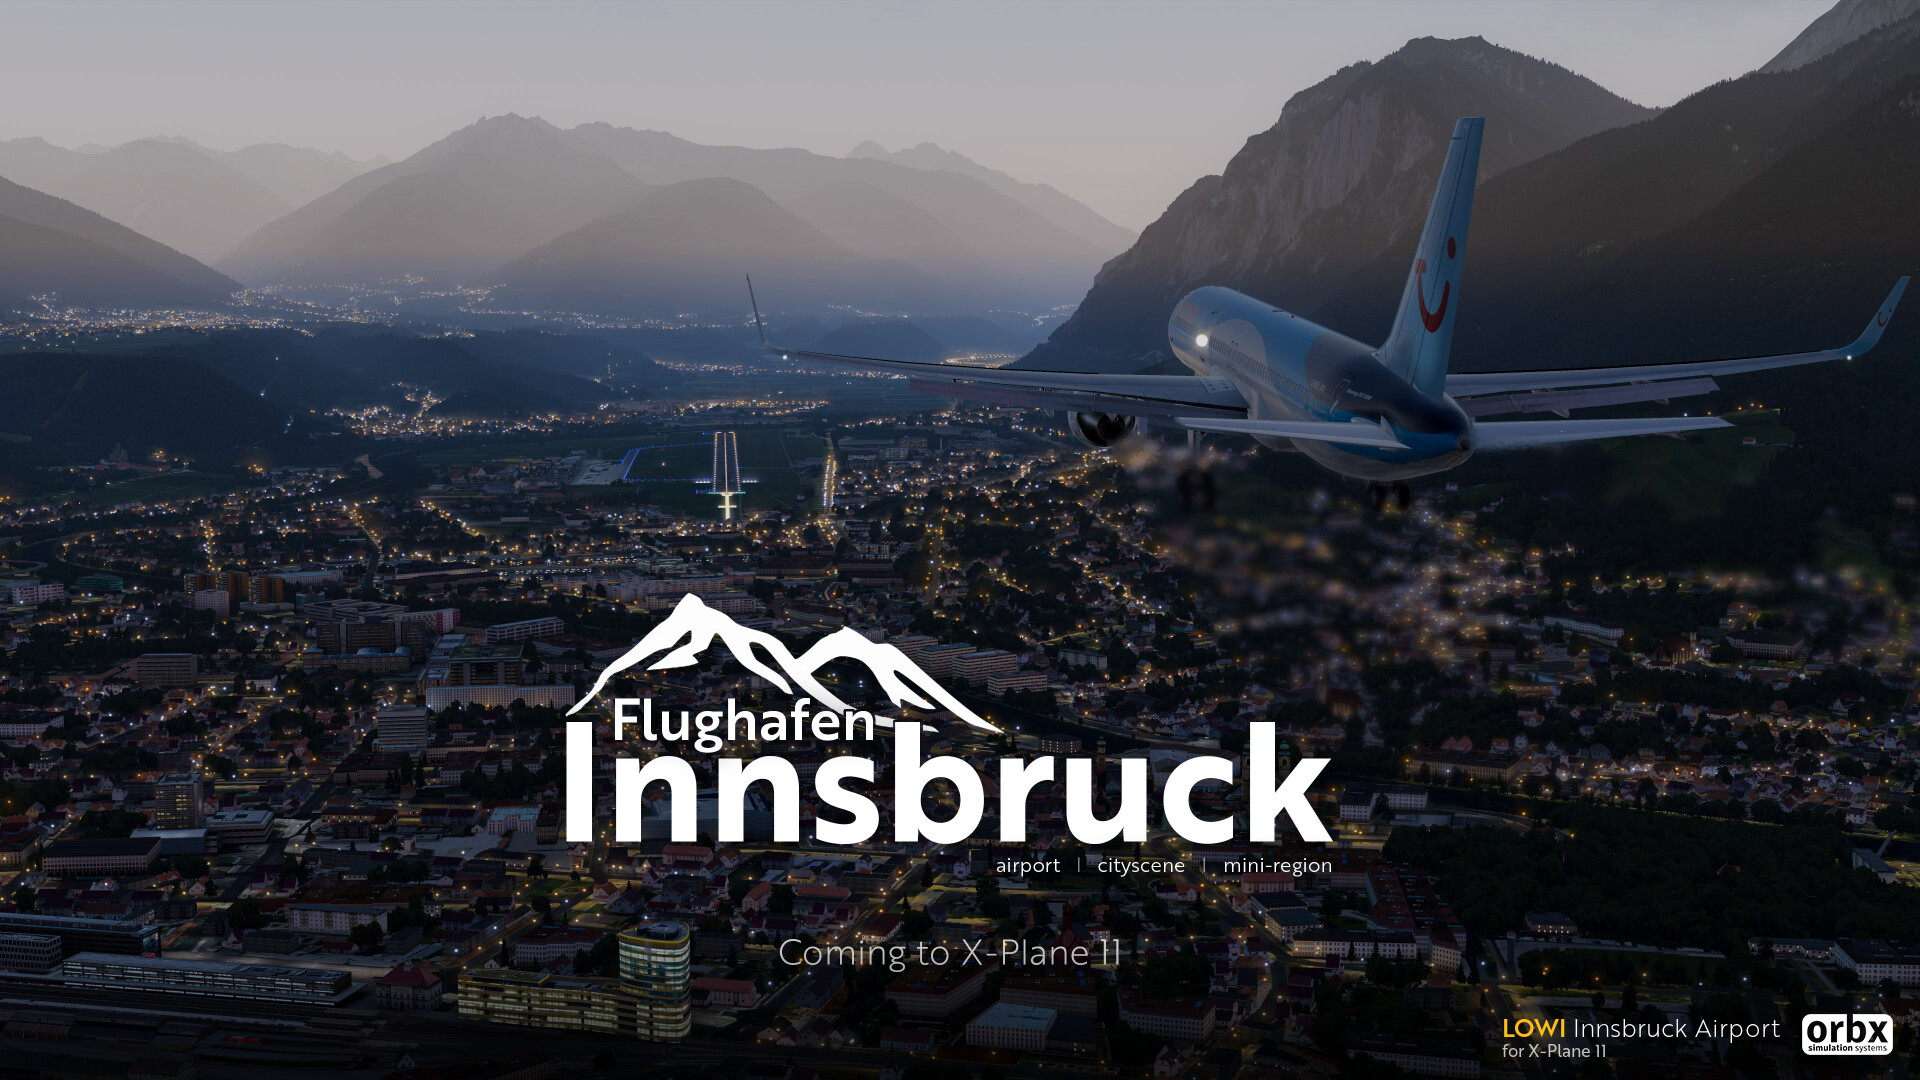 announcement] Introducing LOWI Innsbruck Airport for X-Plane